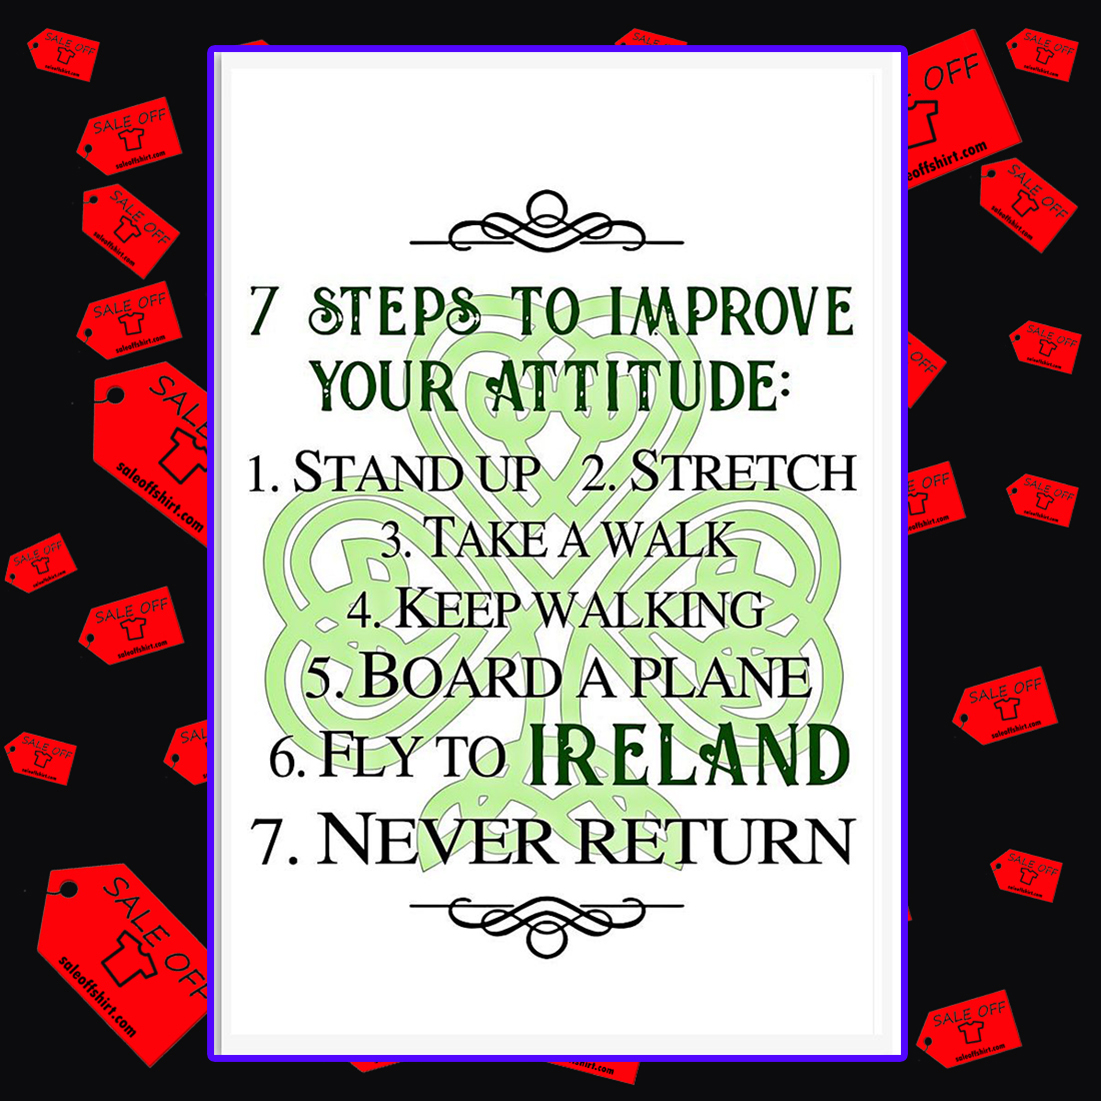 7 steps to improve your attitude poster 11x17